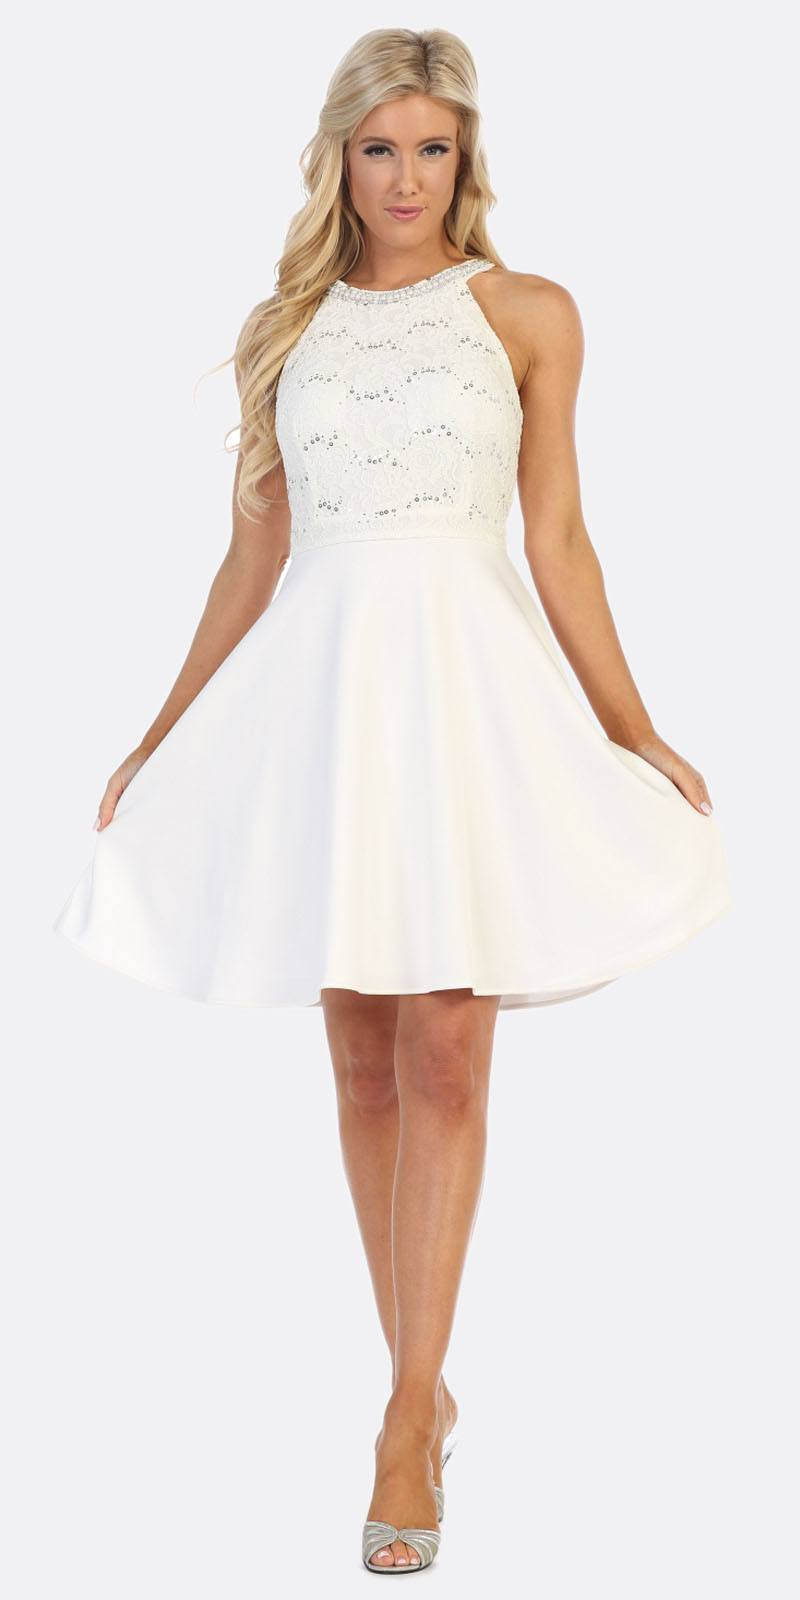 4aac5eb7796 White Lace Dress With Sleeves Knee Length